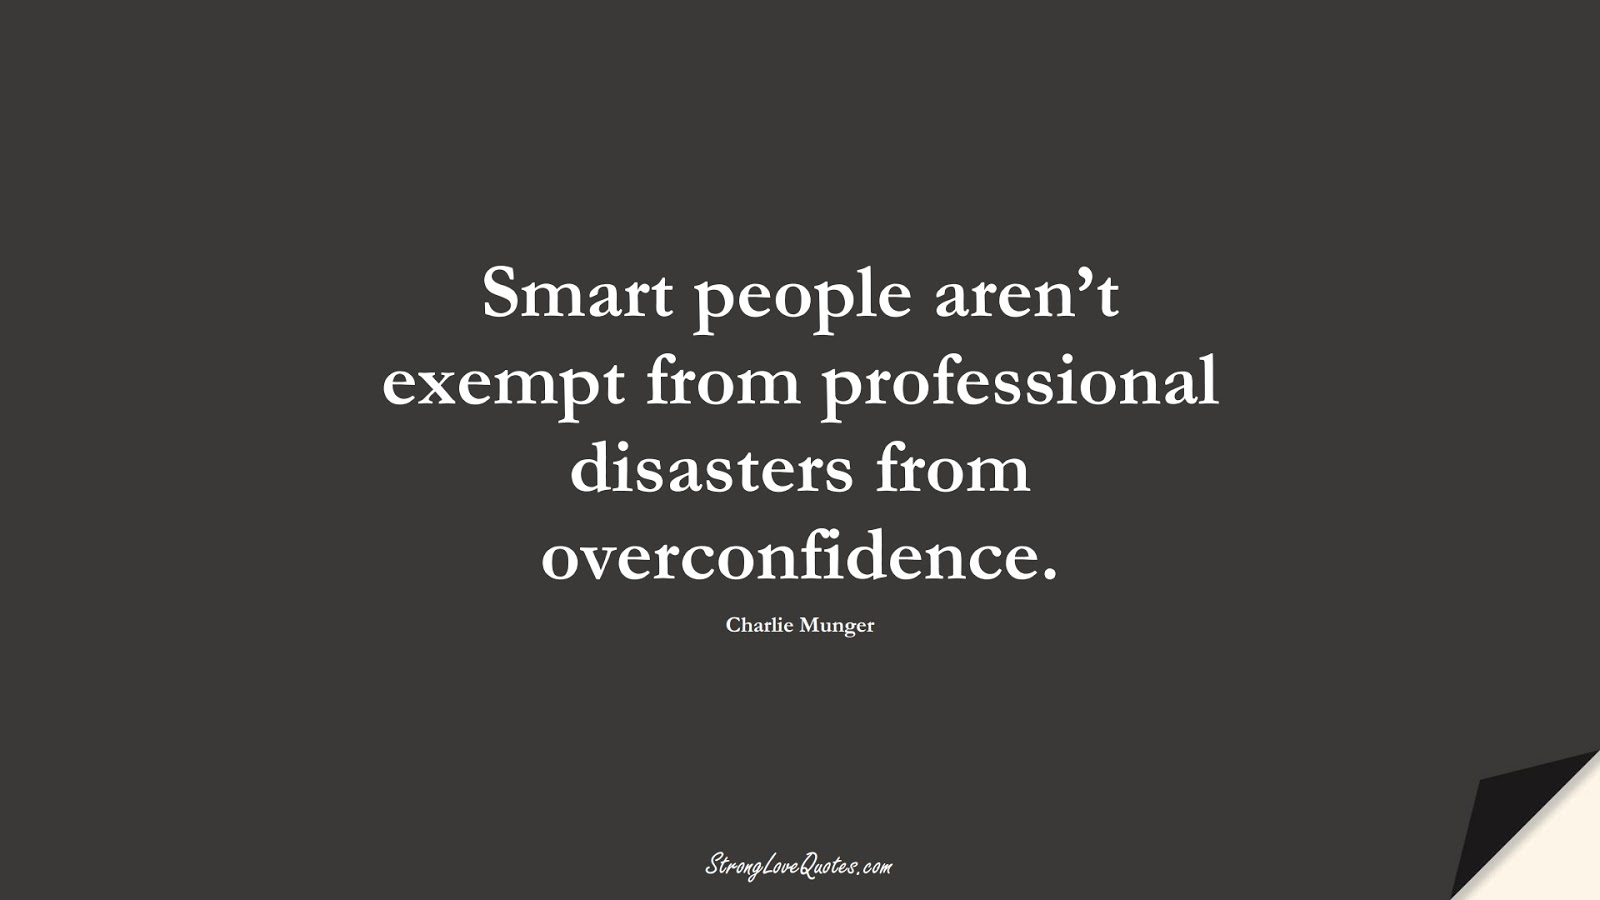 Smart people aren't exempt from professional disasters from overconfidence. (Charlie Munger);  #KnowledgeQuotes